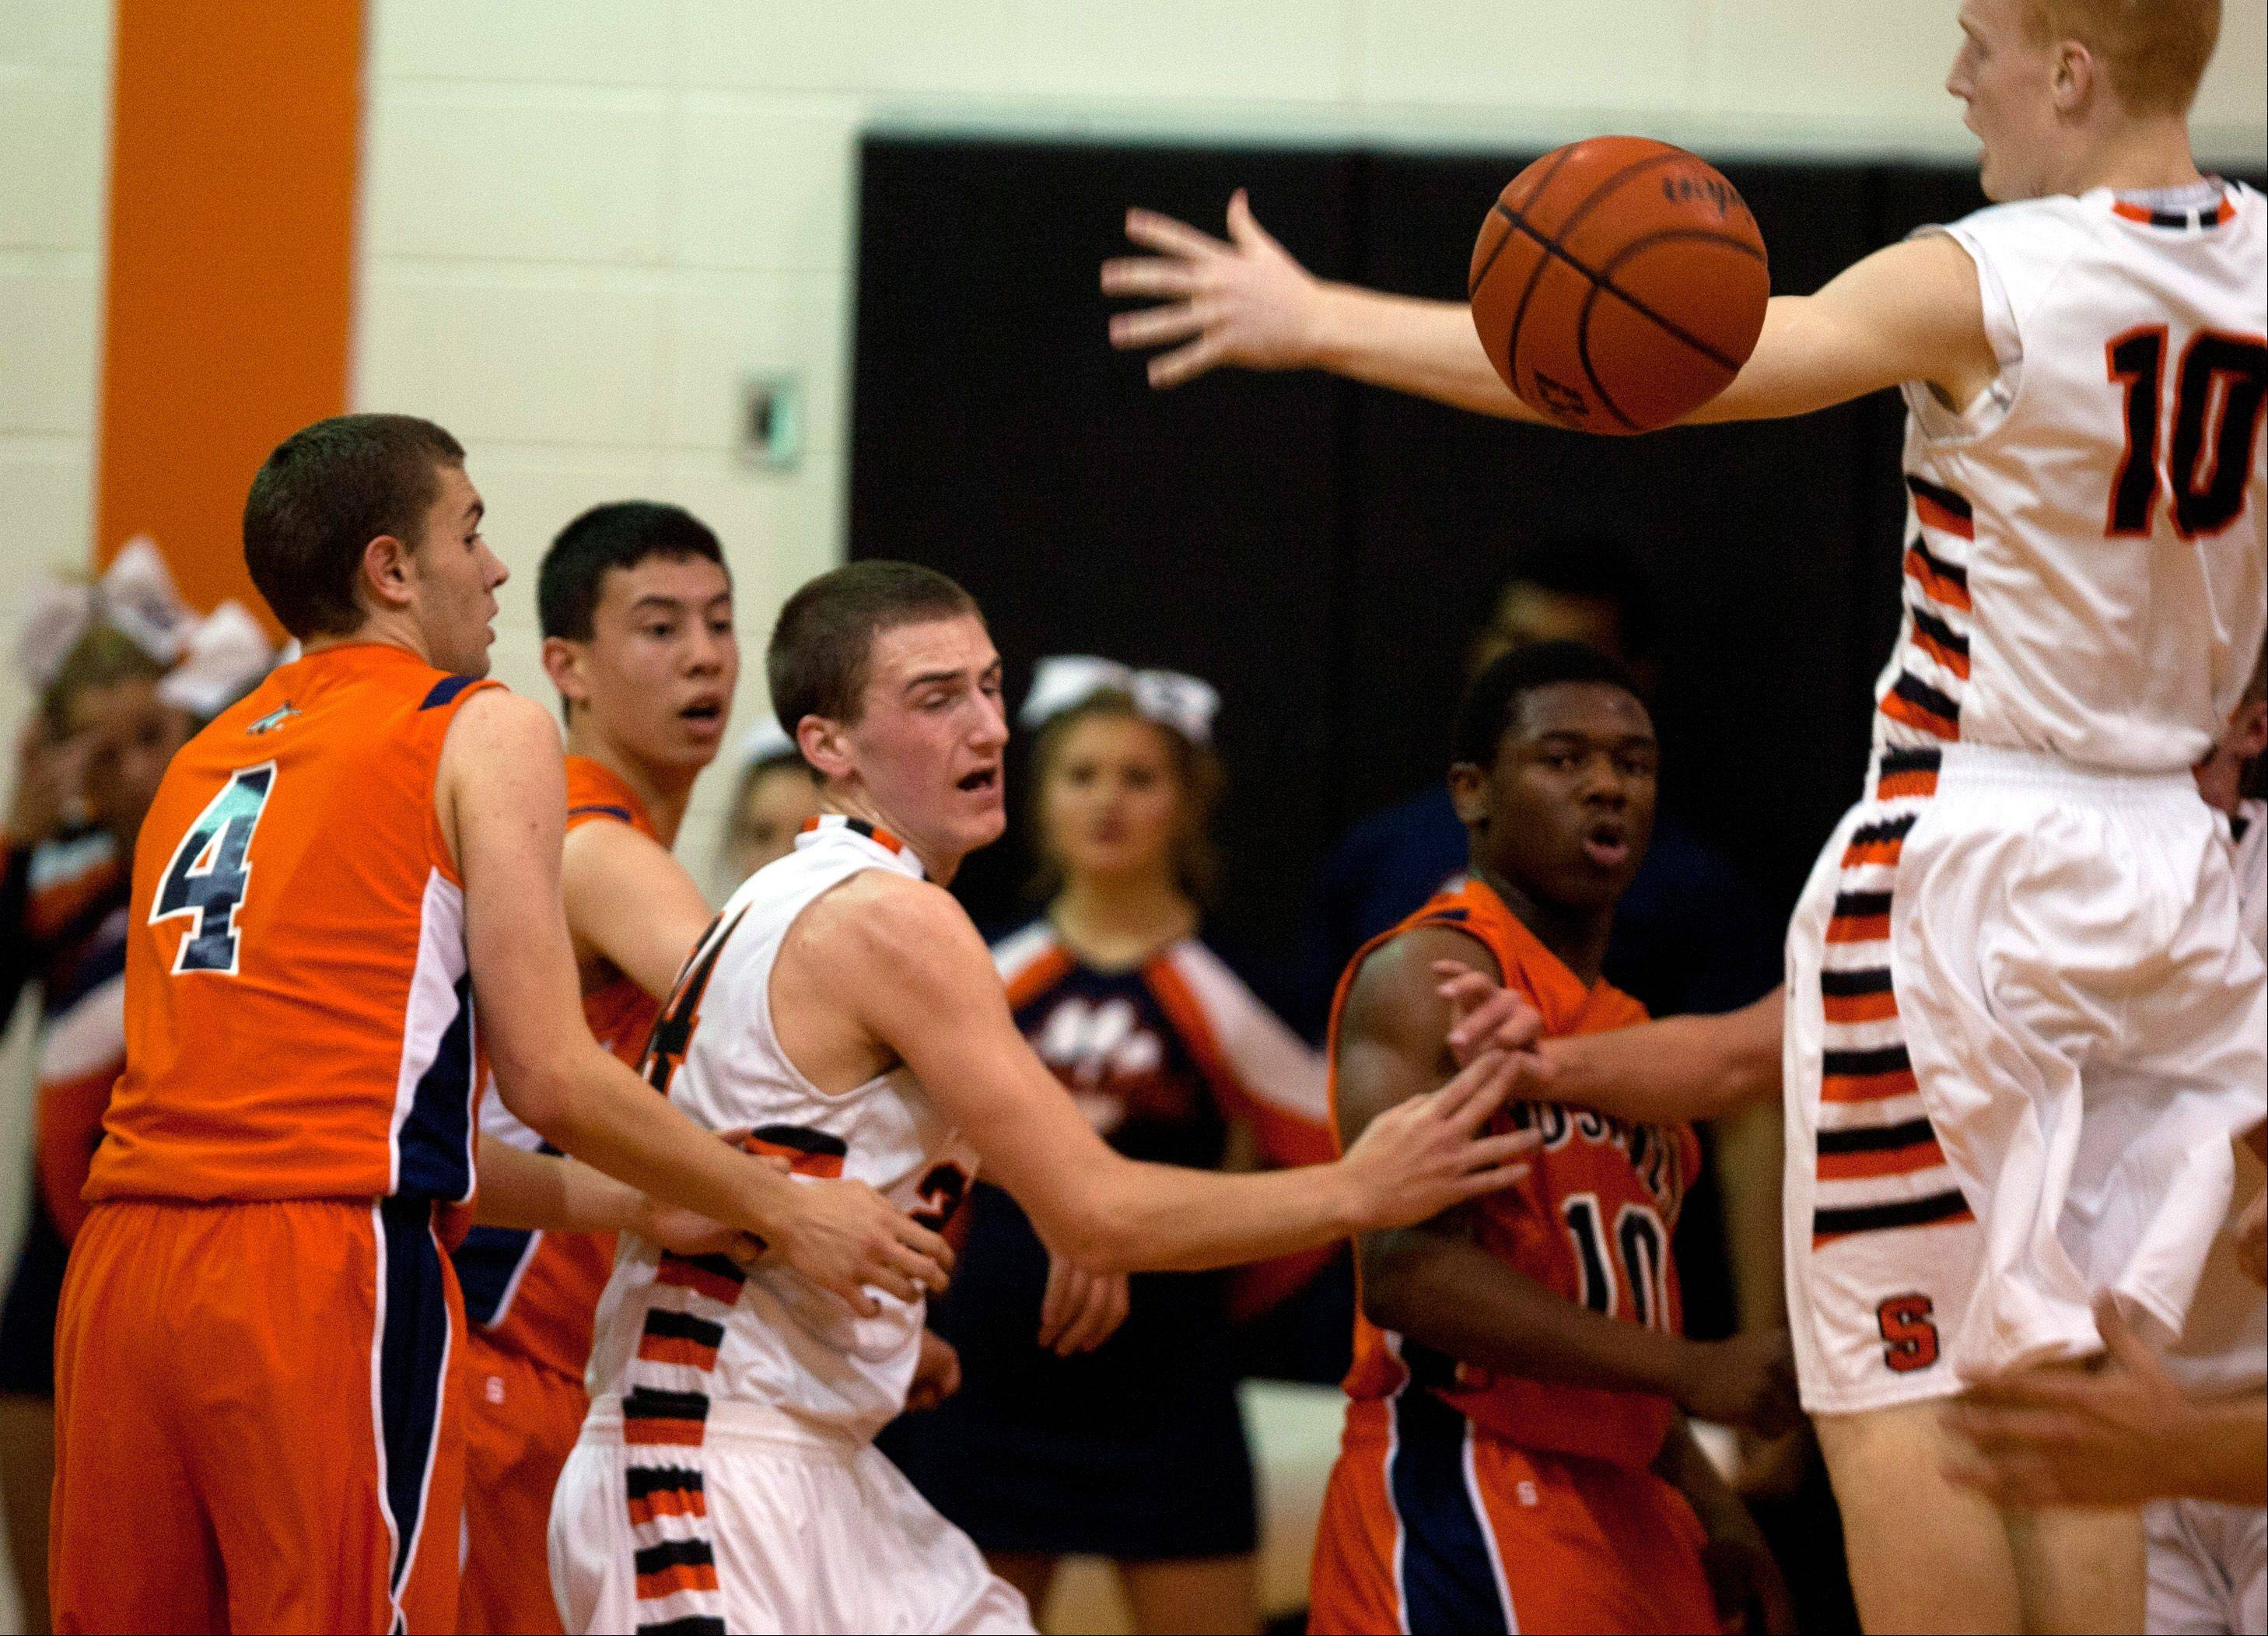 Wheaton Warrenville South's Ryan Graham looks to block a pass against Naperville North.